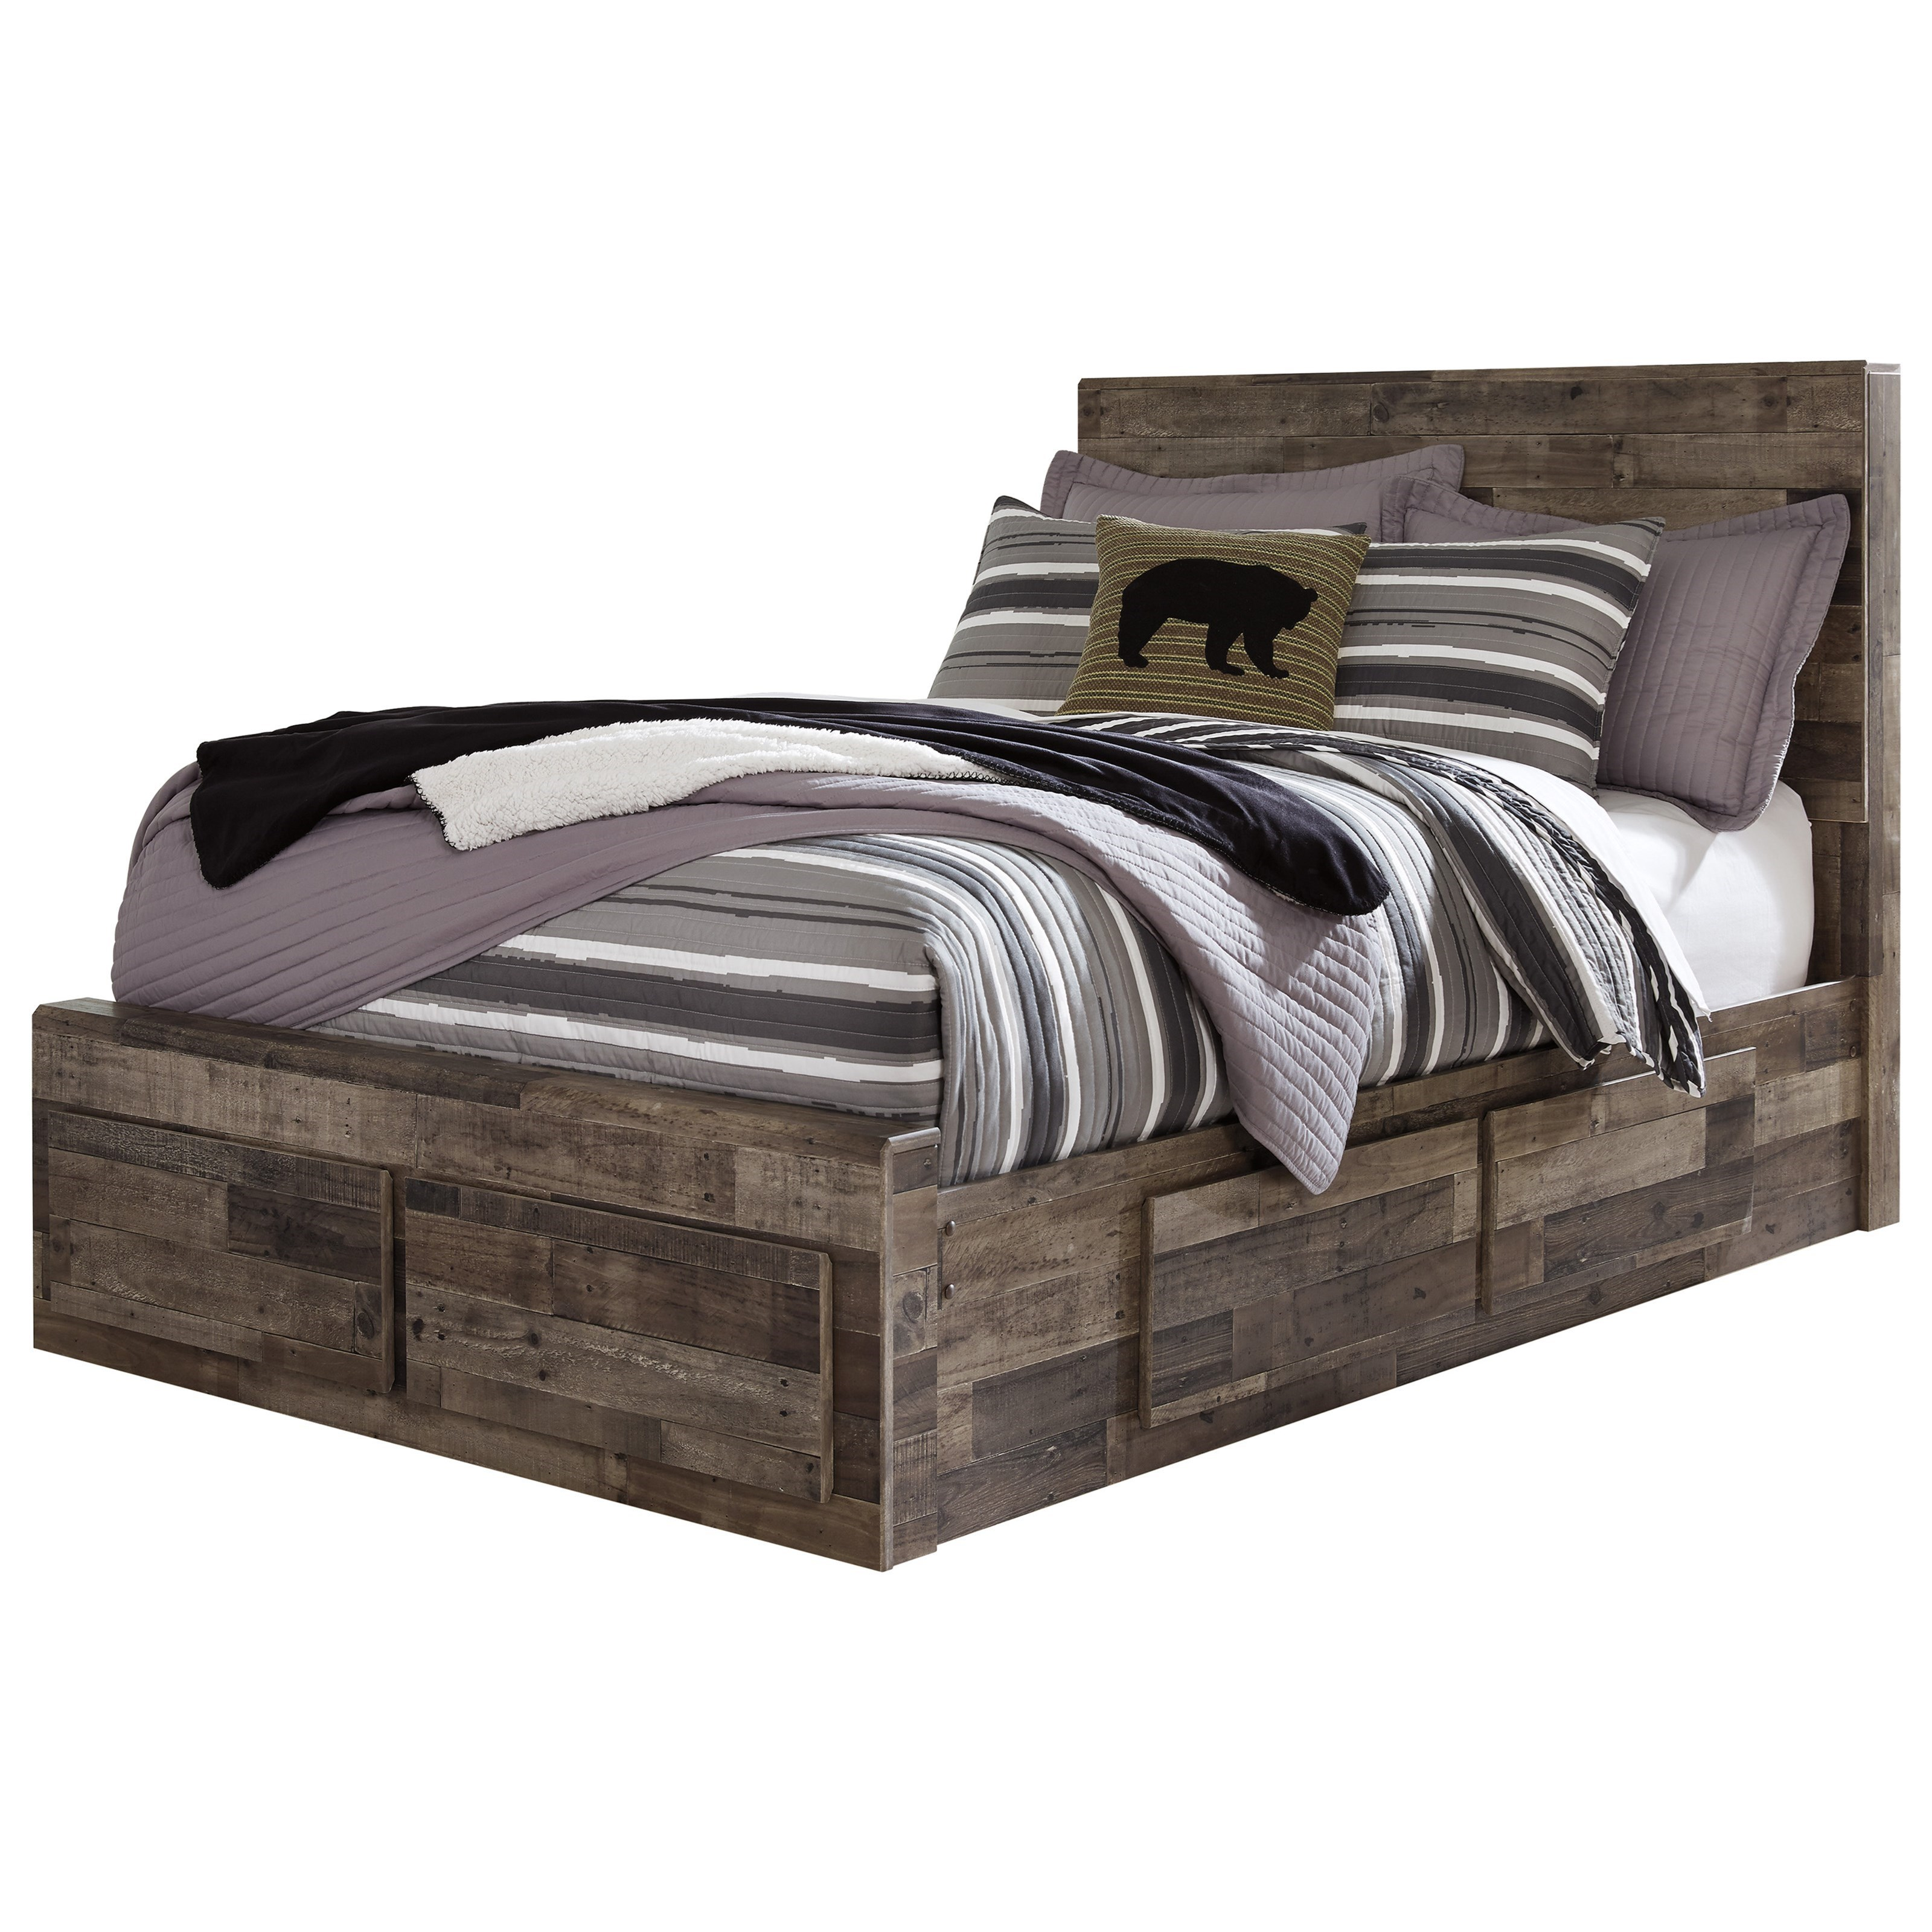 Derekson Full Storage Bed with 6 Drawers by Benchcraft at Walker's Furniture